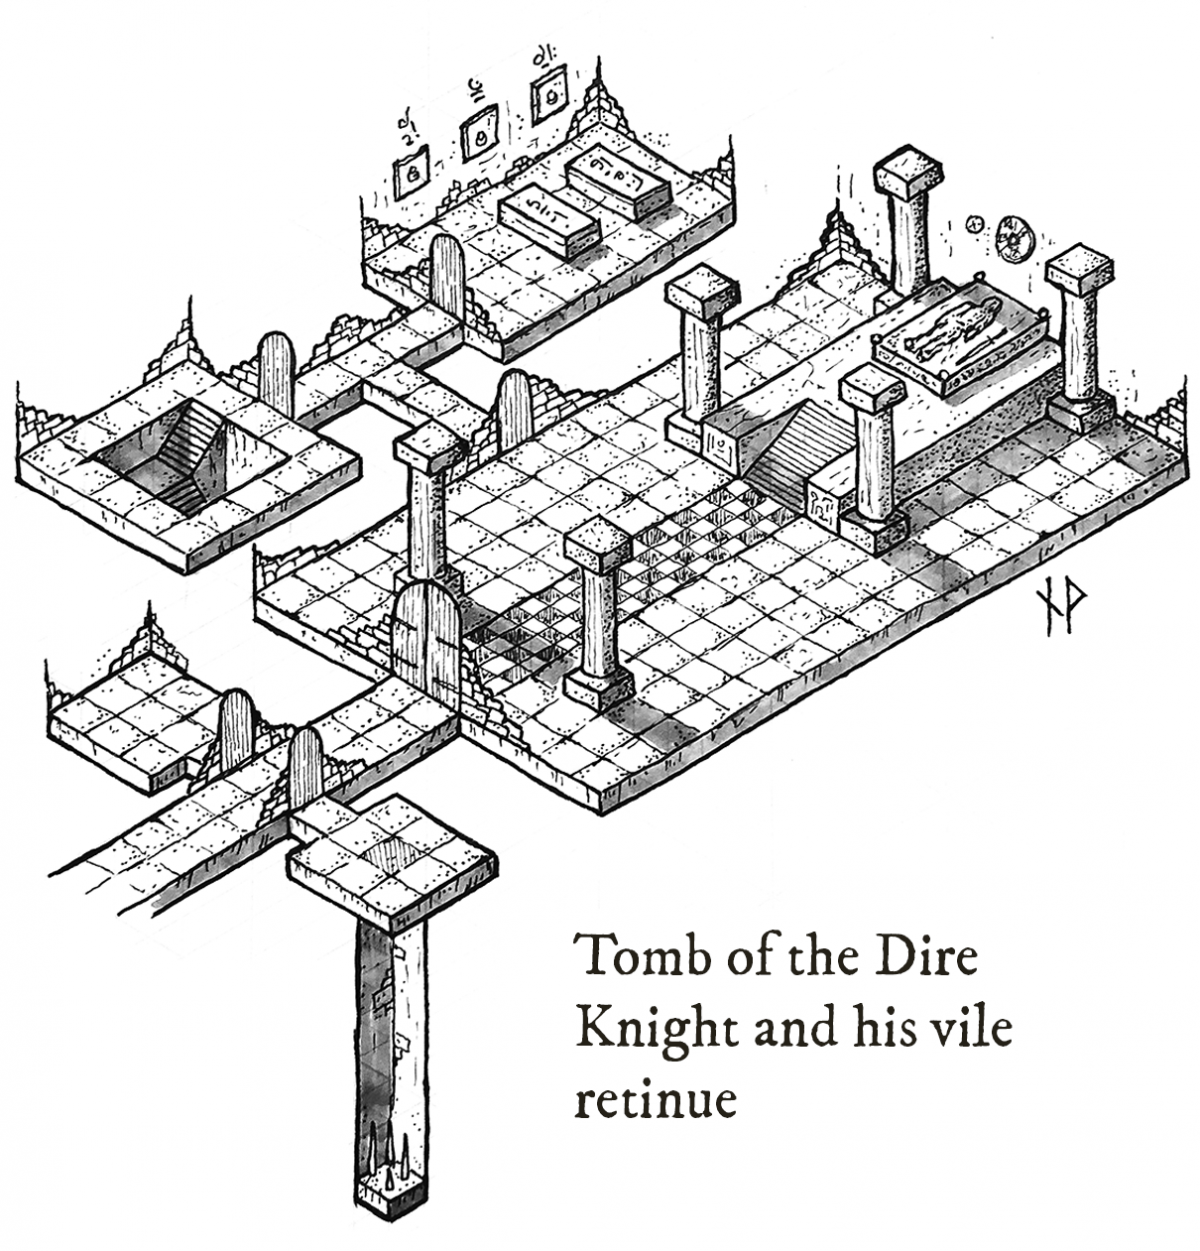 The tomb of the Dire Knight and his vile retinue